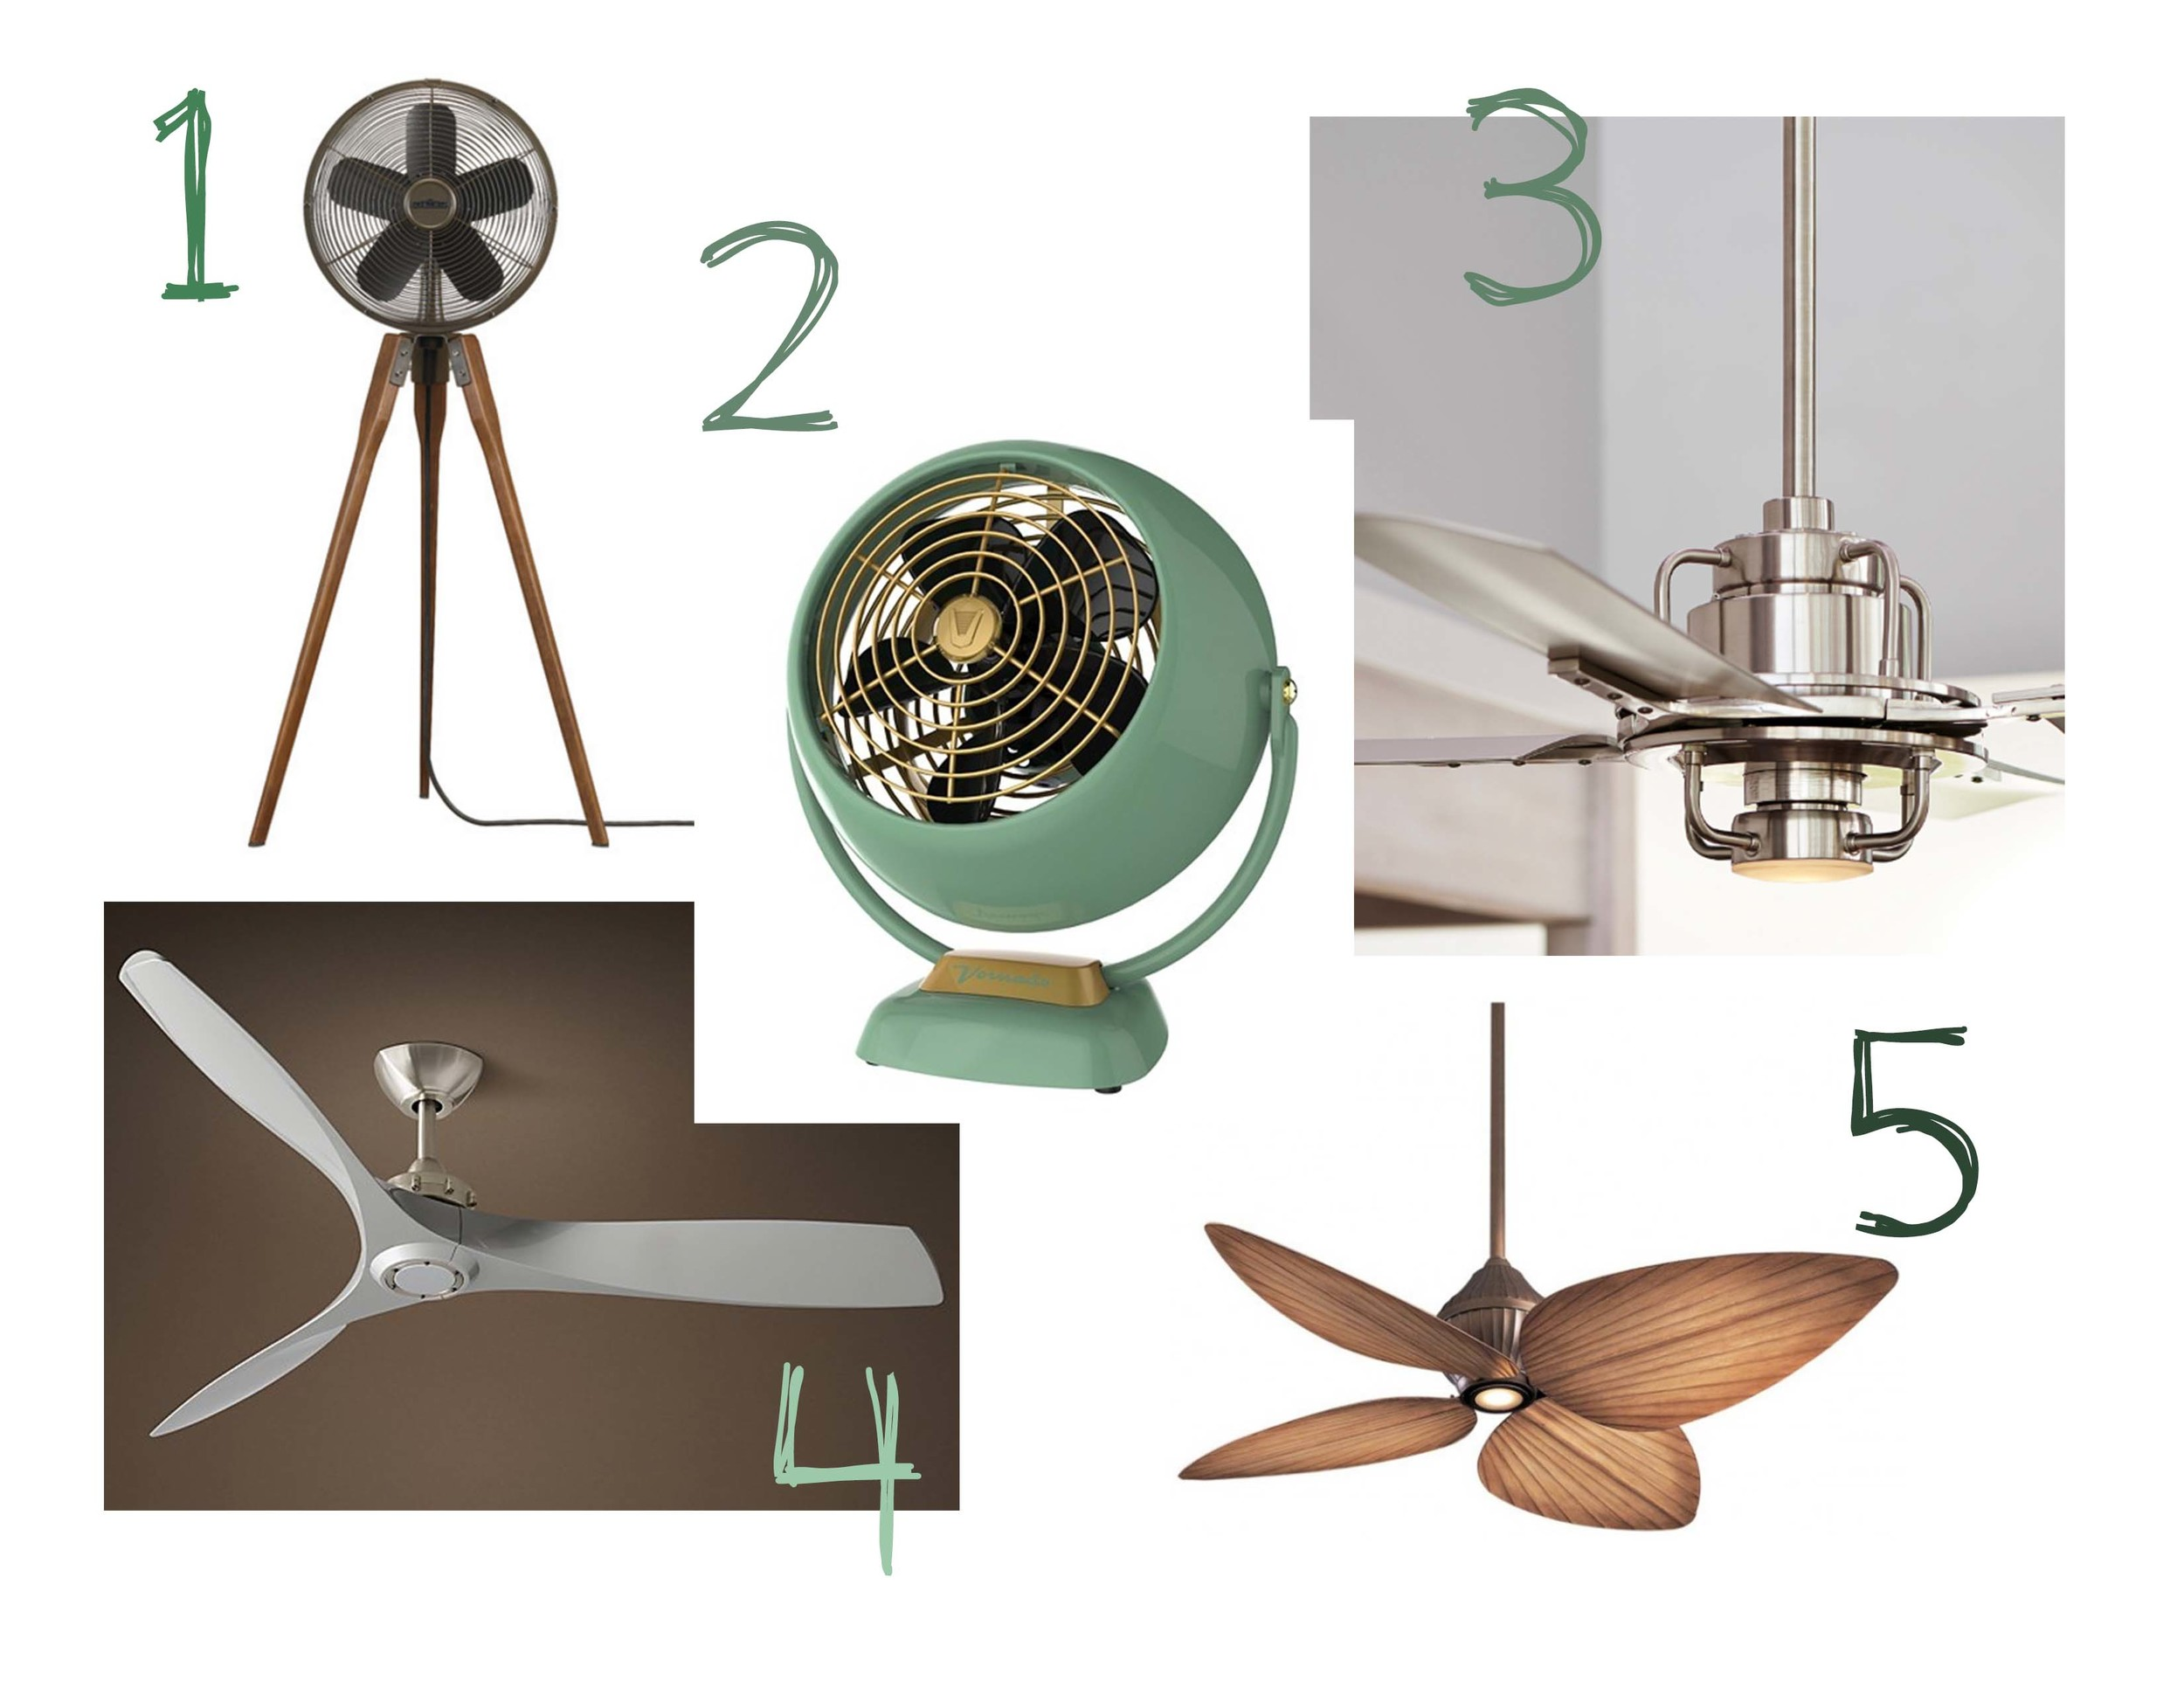 1. http://www.wayfair.com/Fanimation-Arden-Pedestal-Fan-KW3134.html  2. http://www.amazon.com/Vornado-VFAN-Vintage-Circulator-Green/dp/B00TX79BK6?ie=UTF8&keywords=retro%20fan&qid=1465322798&ref_=sr_1_2&sr=8-2  3. http://www.rejuvenation.com/catalog/collections/peregrine-industrial-LED-ceiling-fans  4. https://www.restorationhardware.com/catalog/product/product.jsp?productId=prod6430139&categoryId=cat3860005  5. http://www.houzz.com/photos/114529/Minka-Aire-Gauguin-Ceiling-Fan-tropical-ceiling-fans